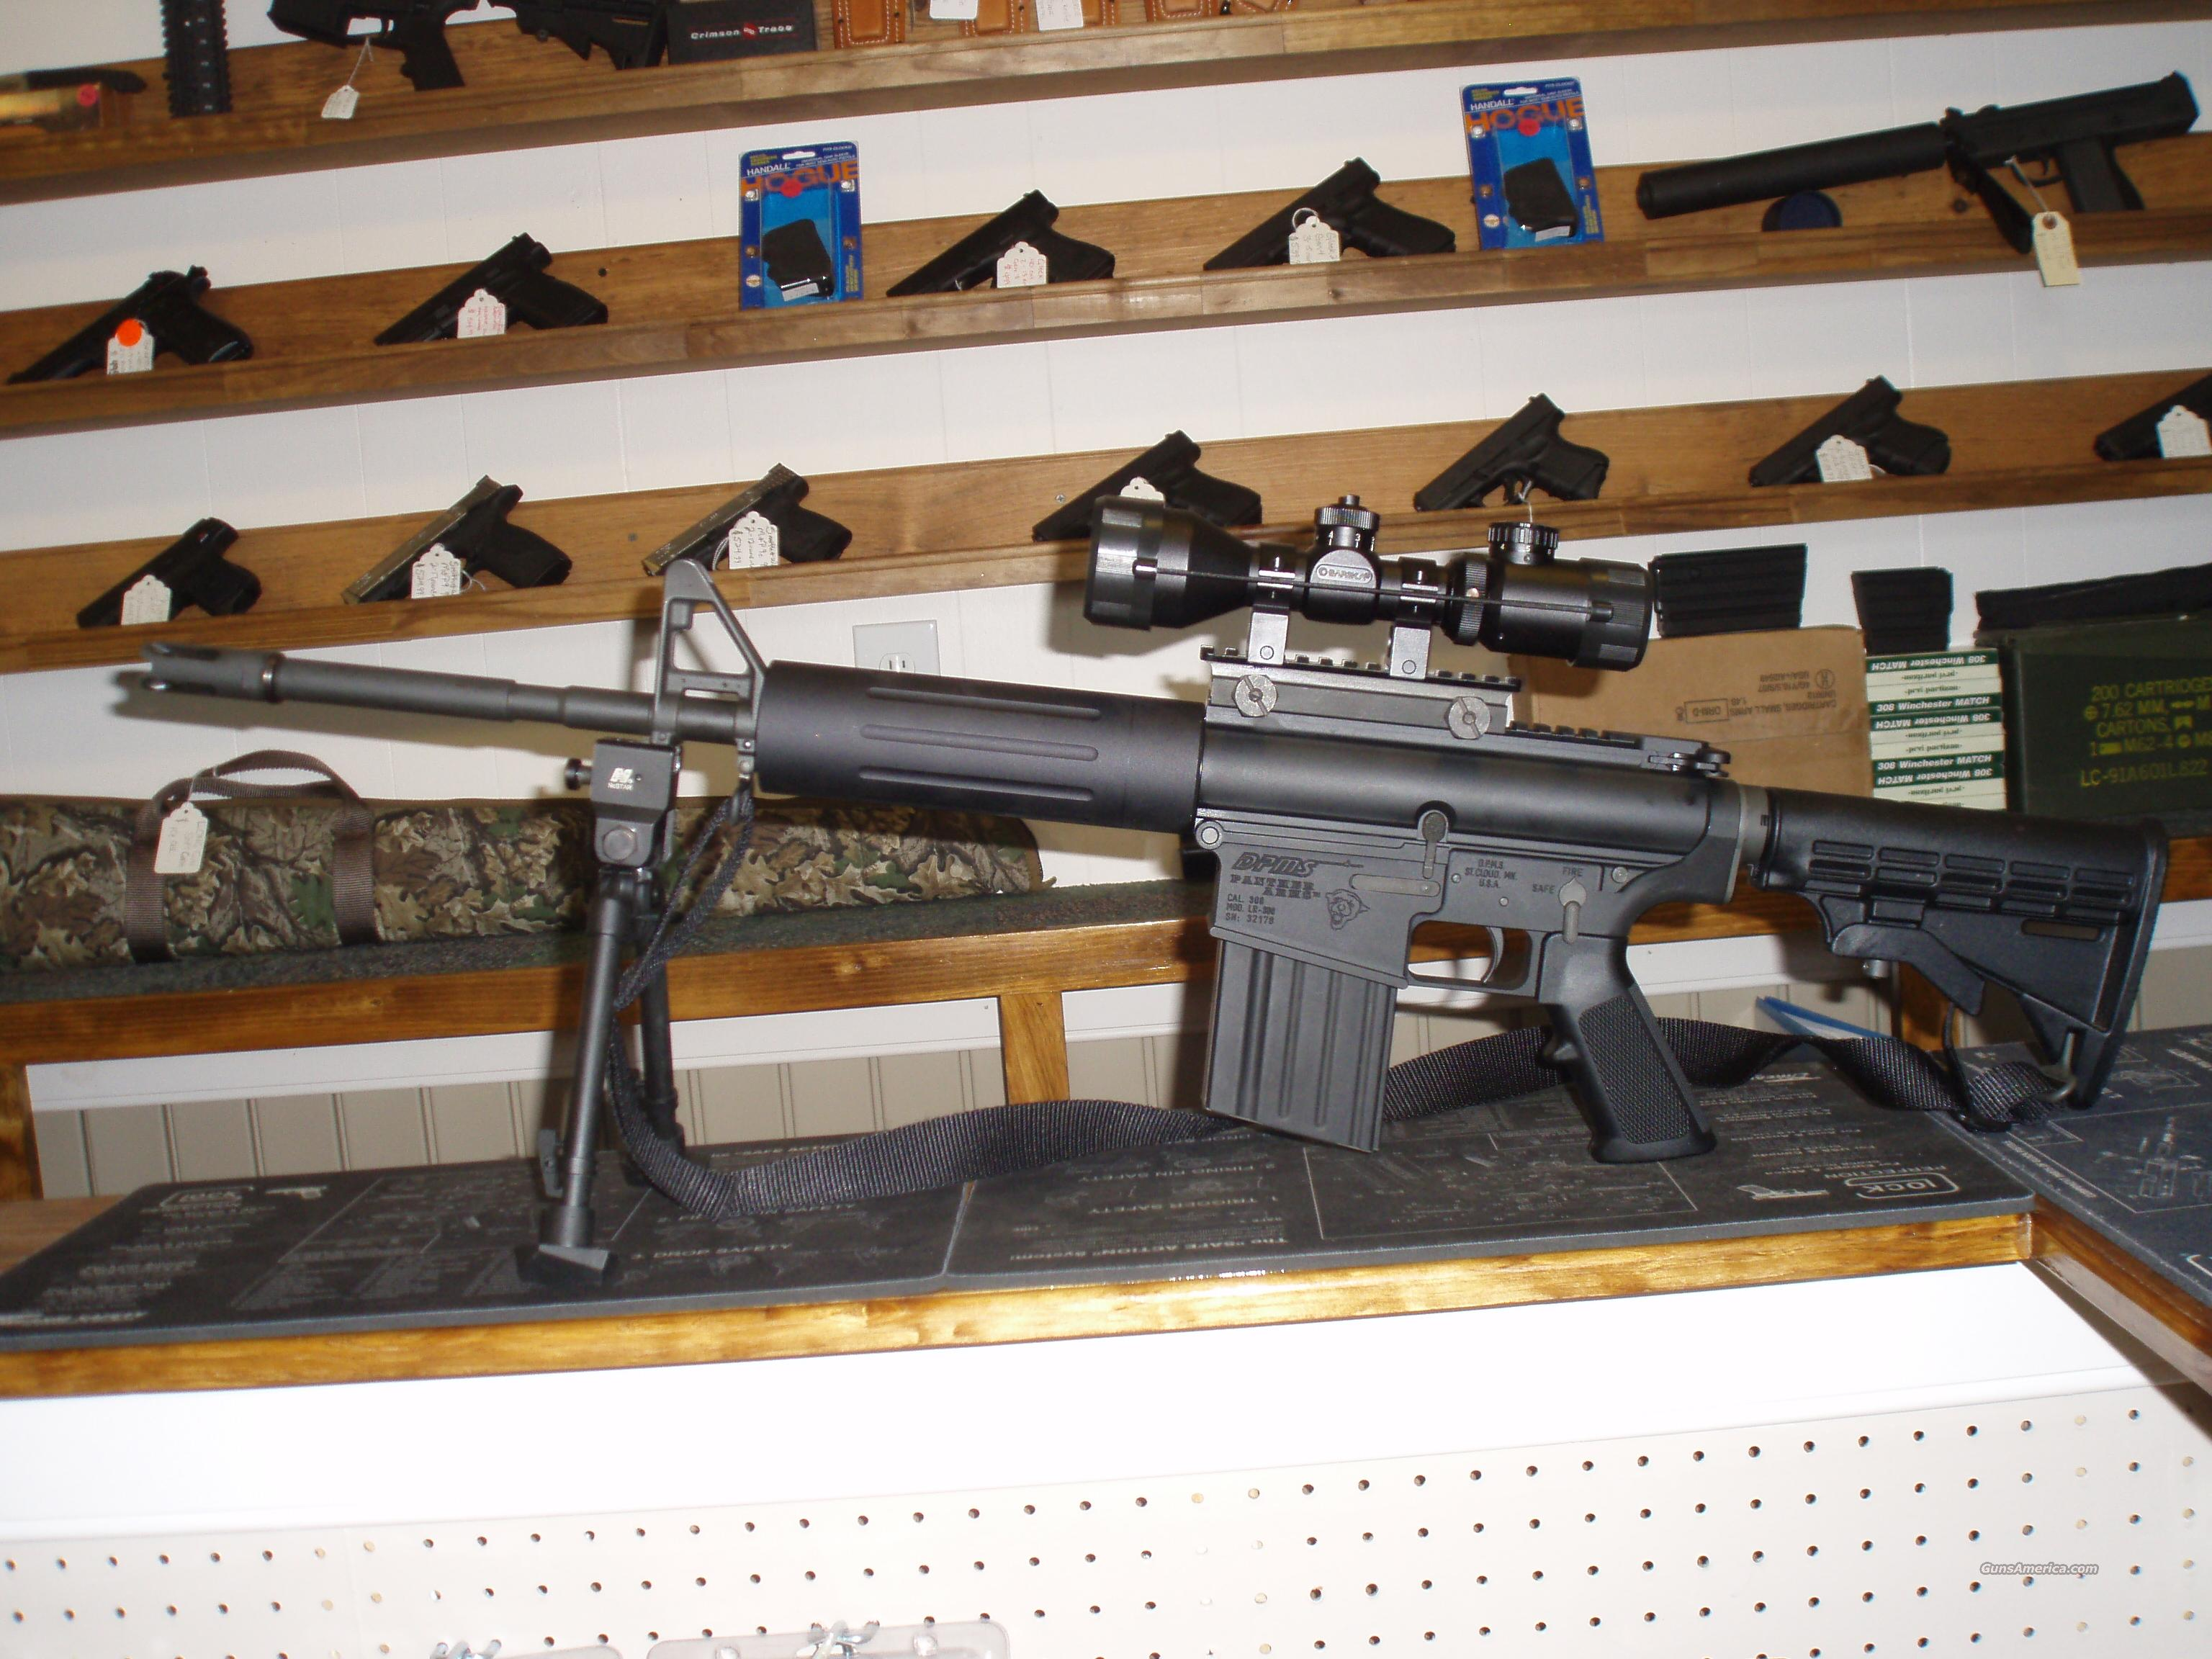 DPMS PANTHER LR-308 W/ 500+ROUNDS & 3 MAGS  Guns > Rifles > DPMS - Panther Arms > Complete Rifle